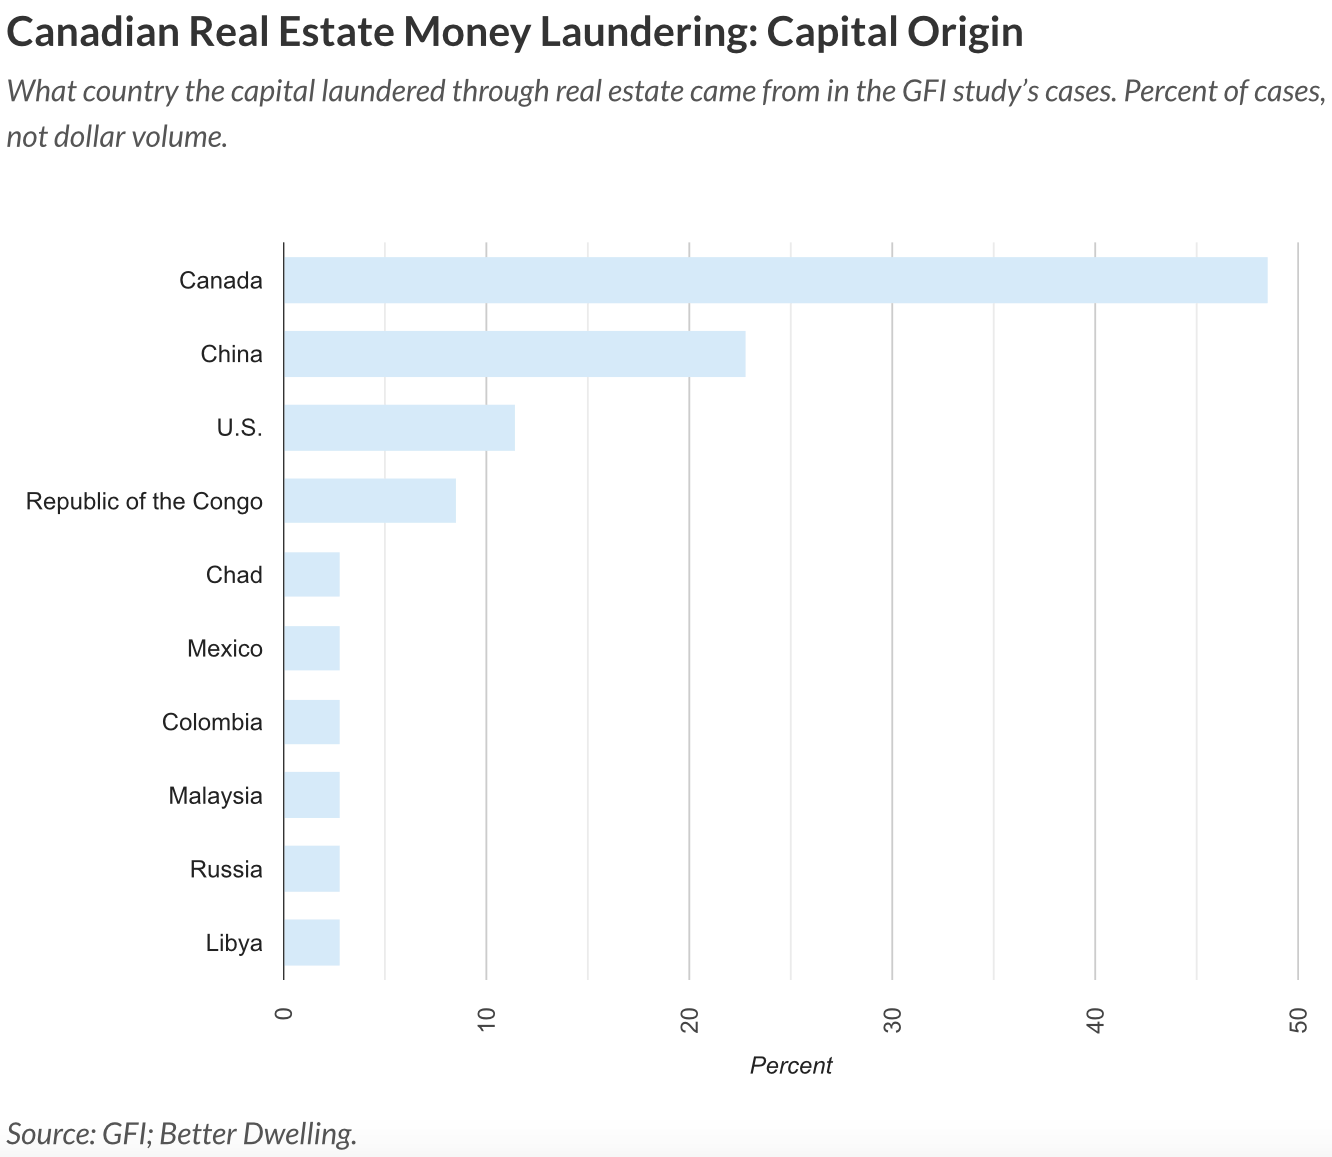 Canadian real estate money laundering by country